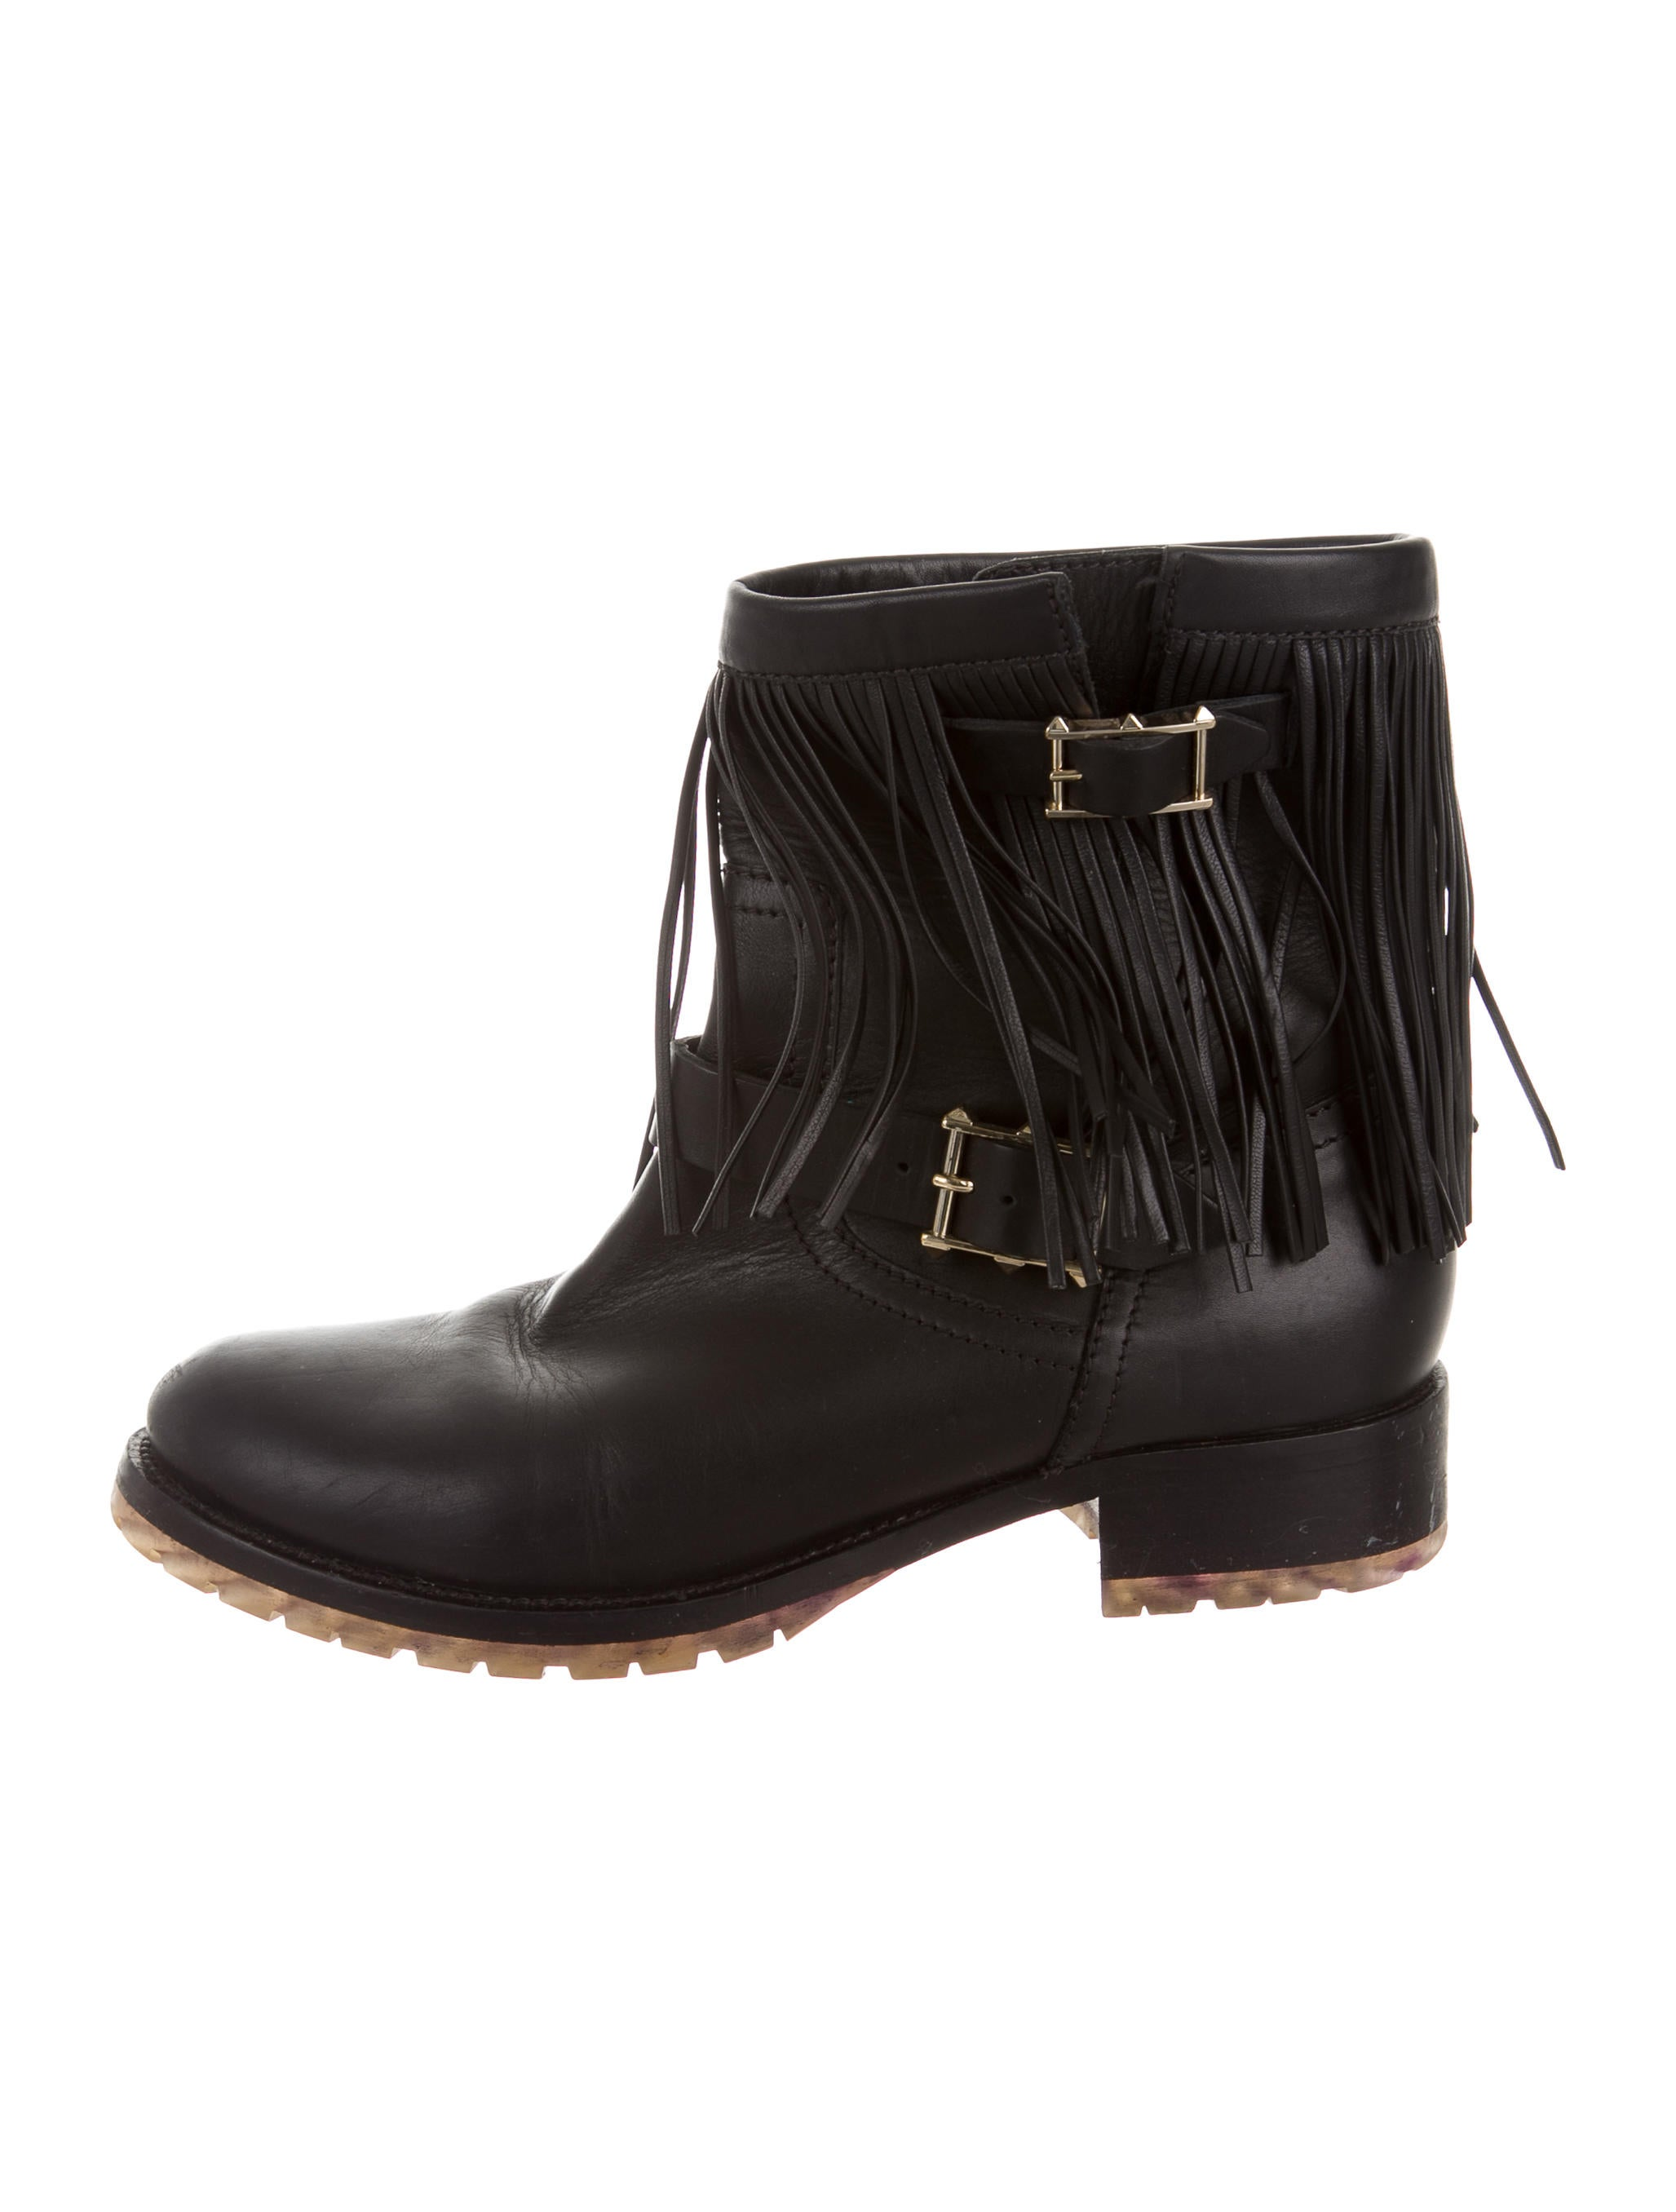 Perfect Old Navy Womens Moto Ankle Boots From Old Navy  2k15